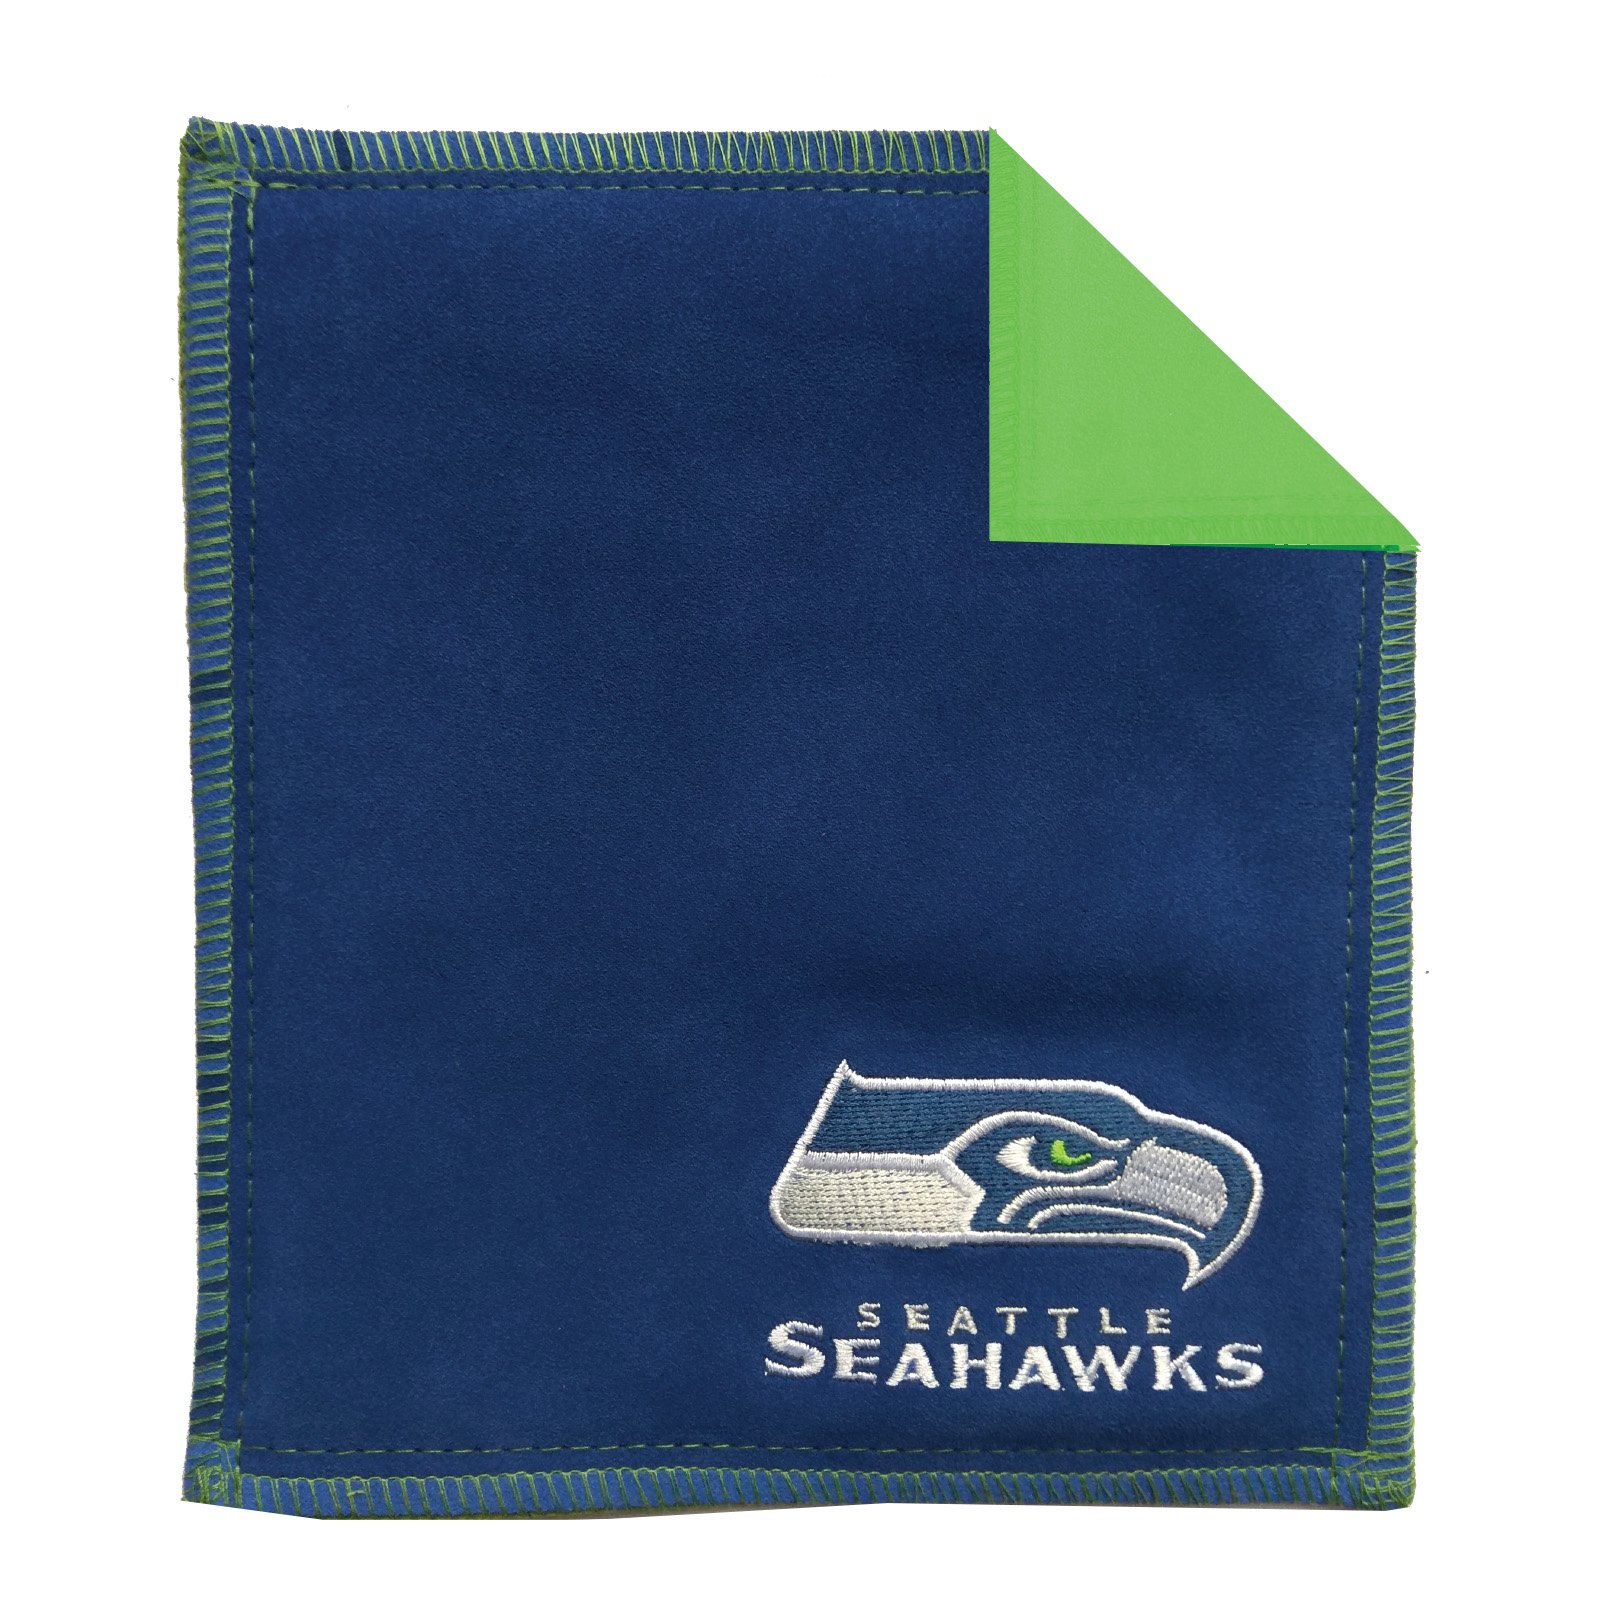 KR Strikeforce Bowling Bags Seattle Seahawks Shammy Cleaning Pad